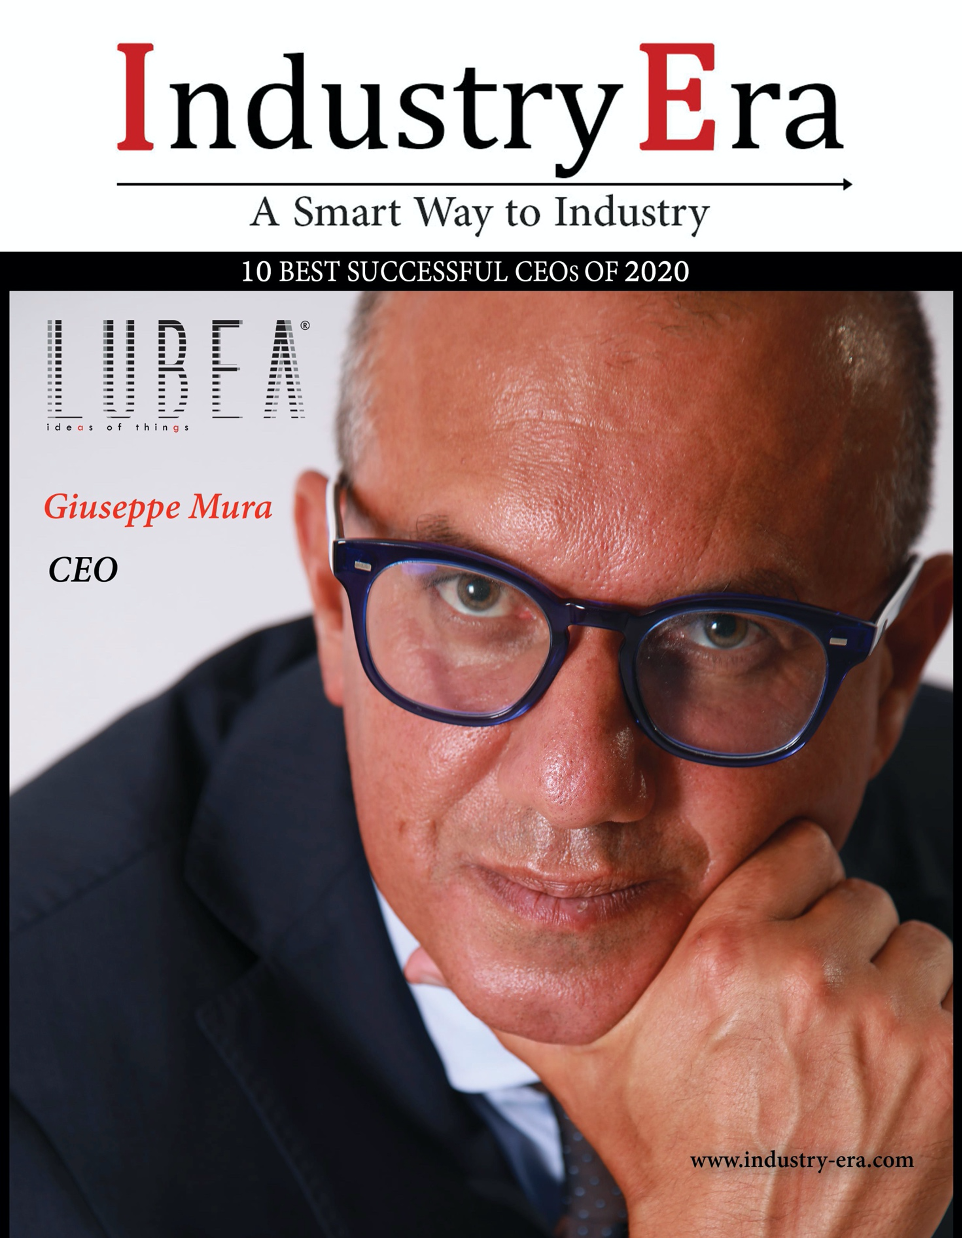 Giuseppe Mura, CEO of LUBEA, is awarded among the top 10 CEOs of 2020!